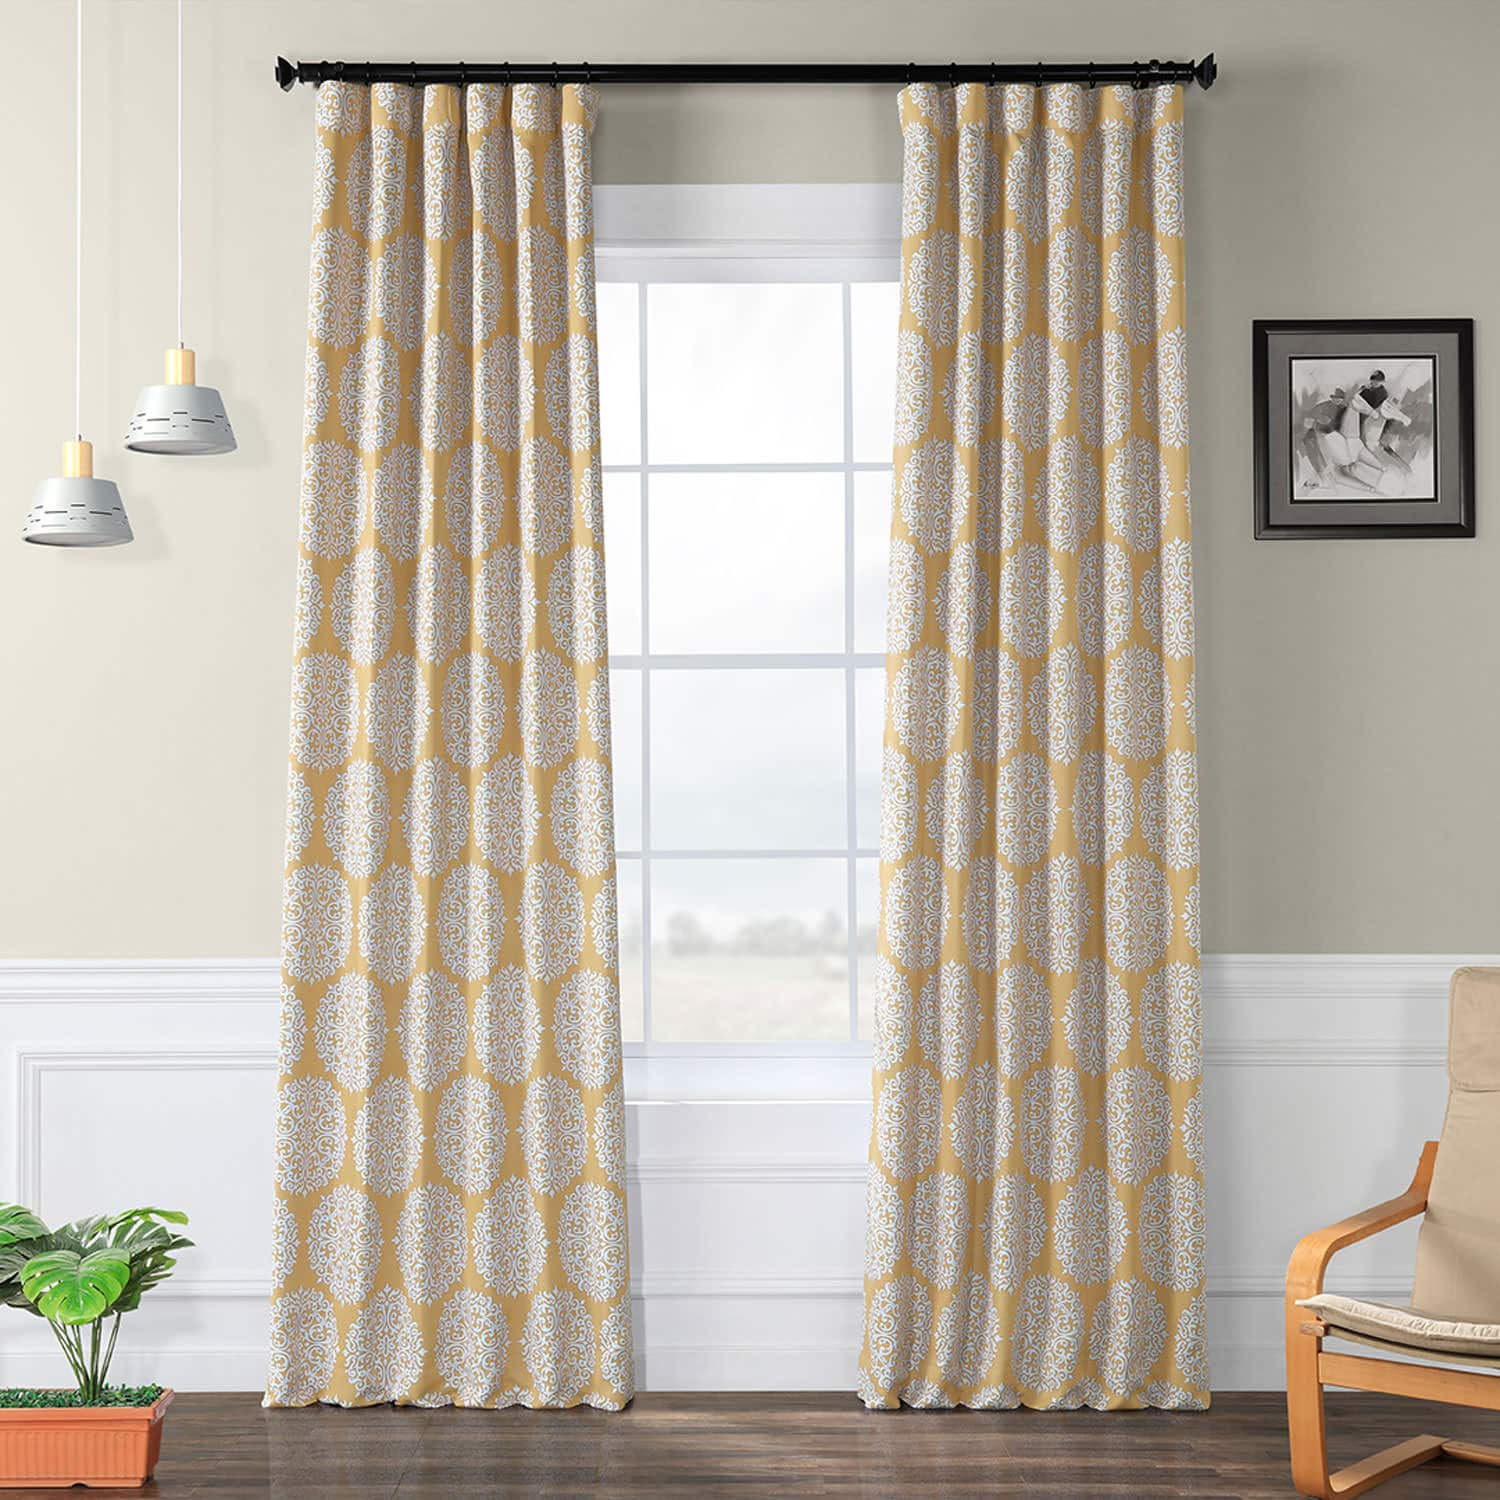 Meridian Gold Blackout Curtain With Regard To Meridian Blackout Window Curtain Panels (View 17 of 20)